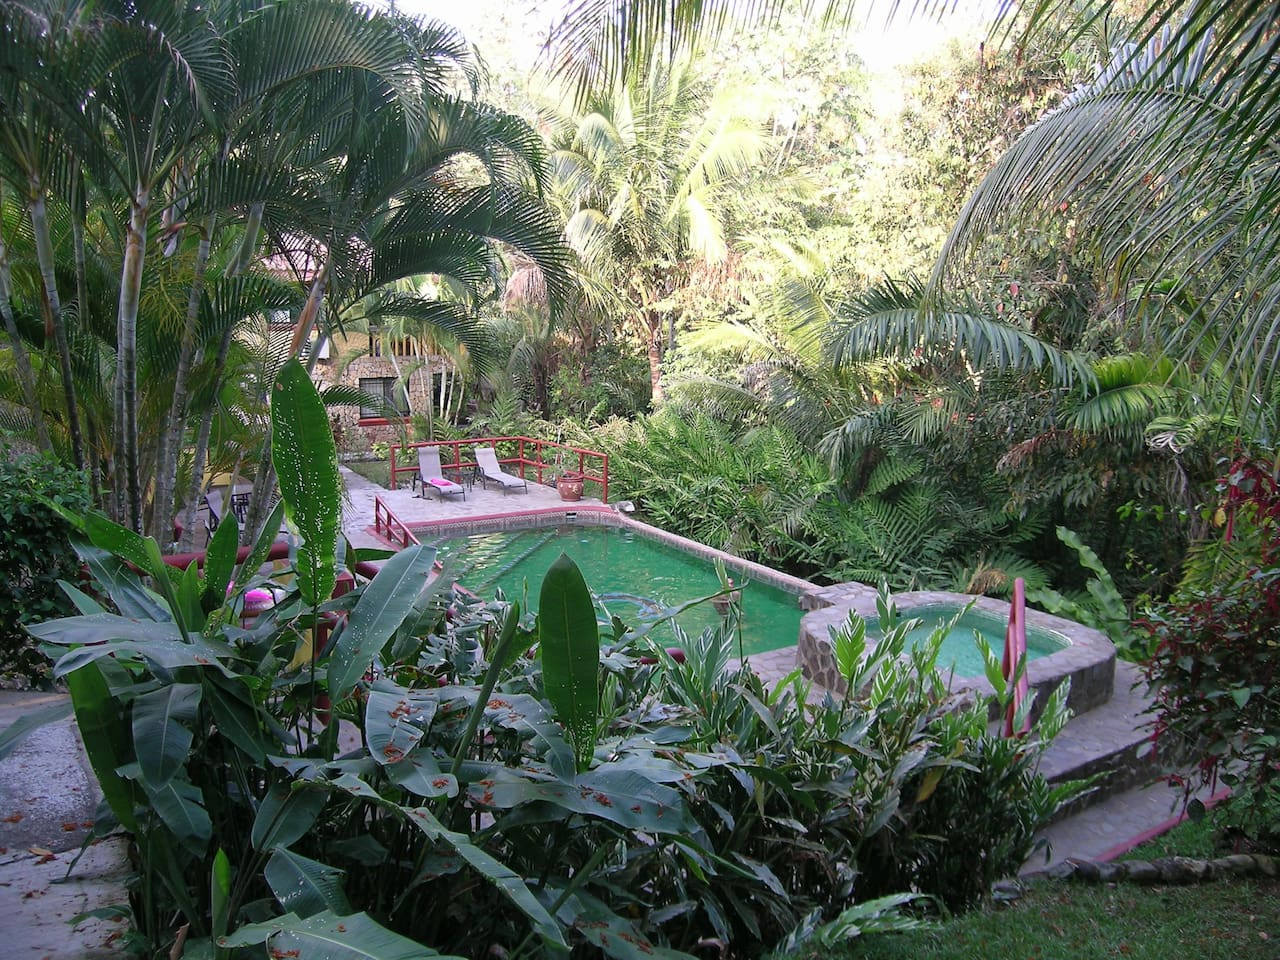 Guests' swimming pool